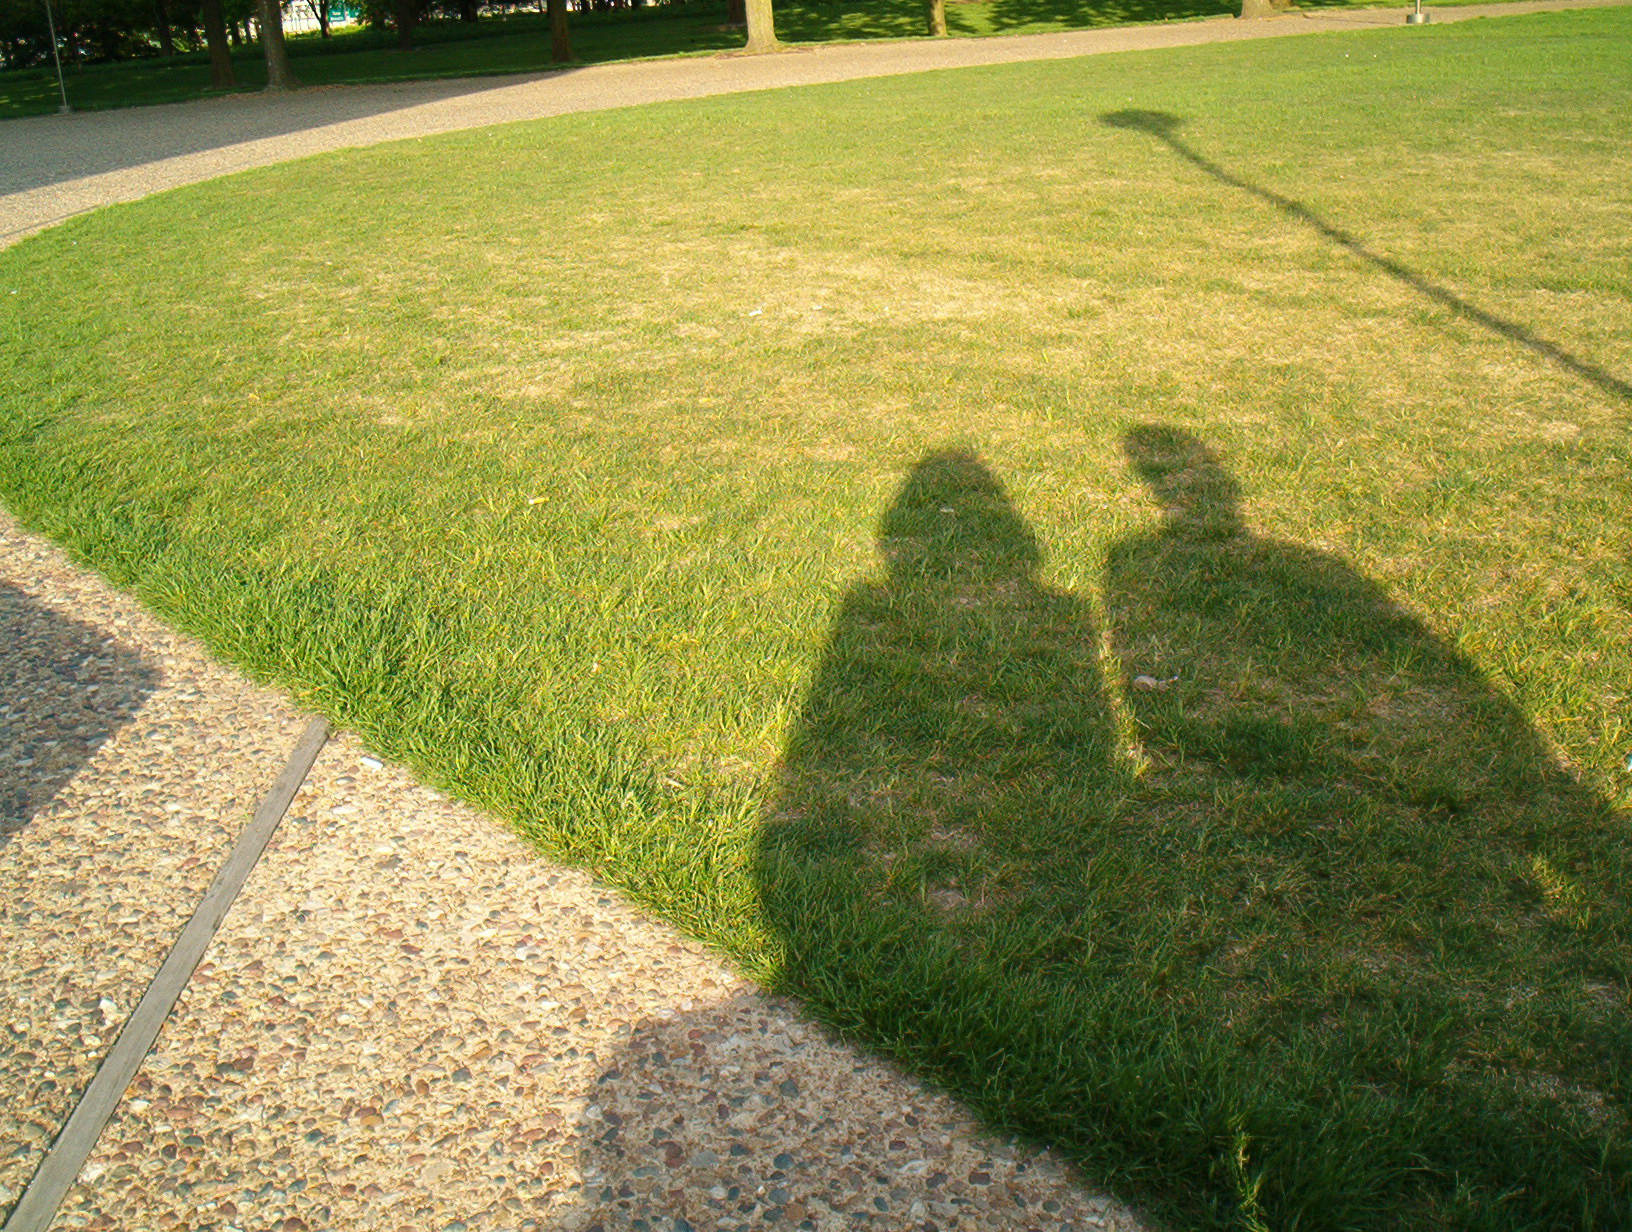 Shadows in the grass by unlikemonday